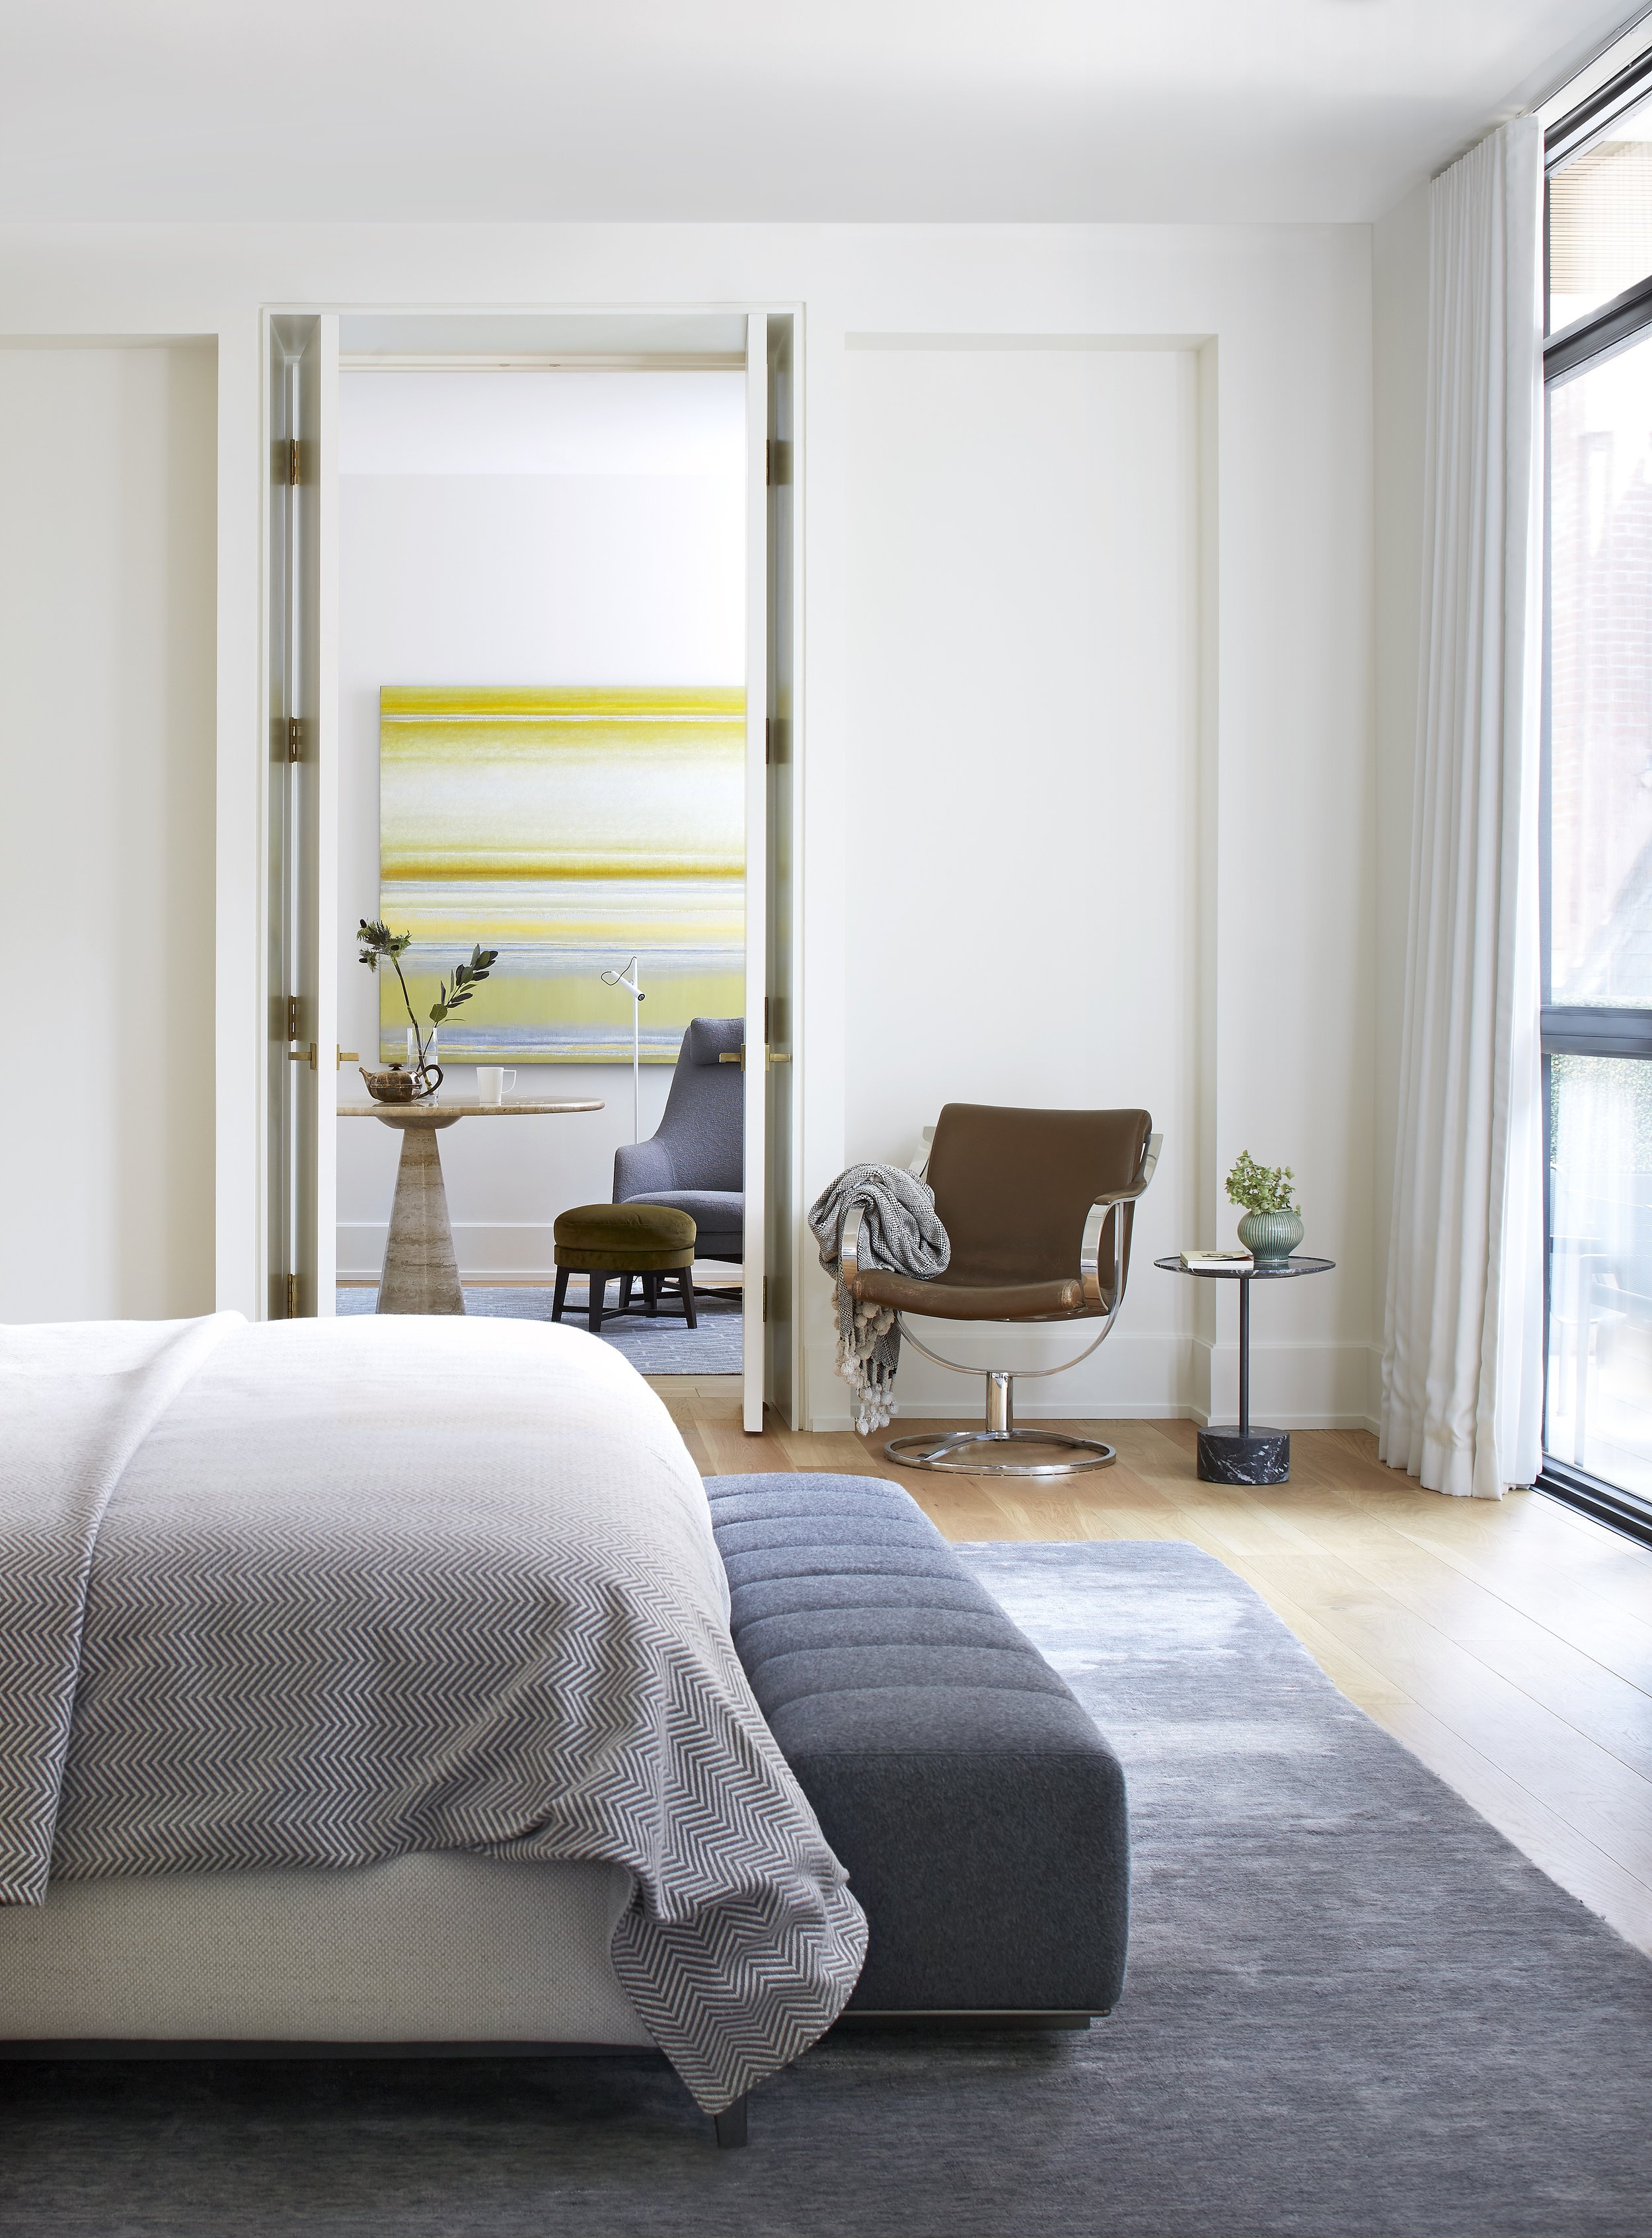 016 MasterBedroom.jpg